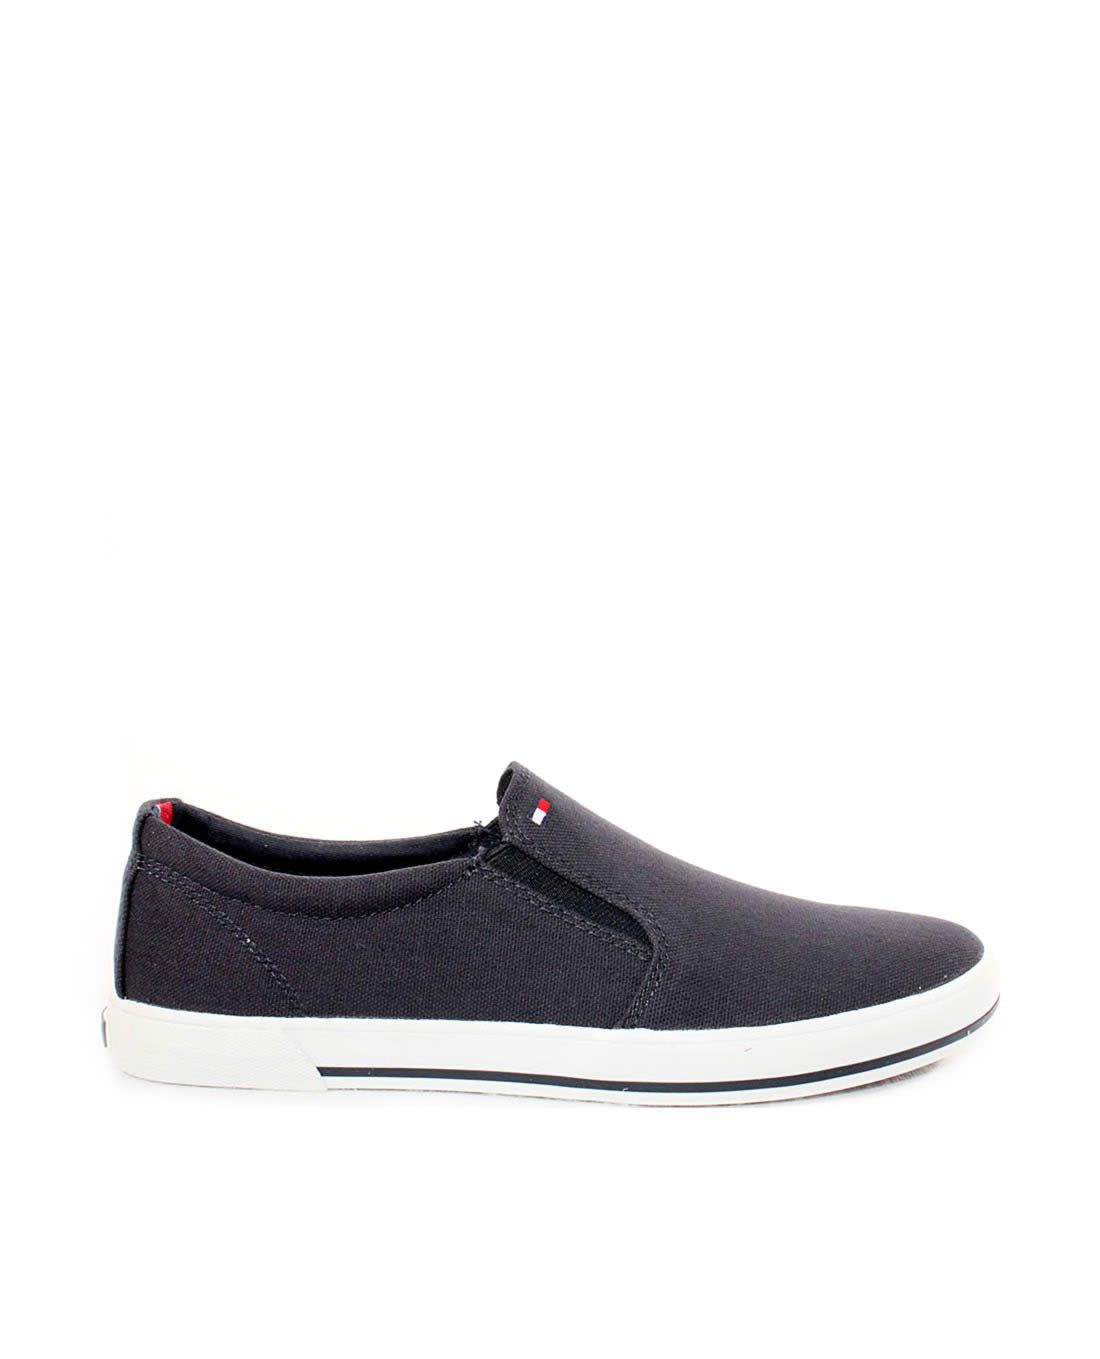 ac8635f0d4e Zapatillas TOMMY HILFIGER marino HARRY 2D Zapatillas Tommy Hilfiger